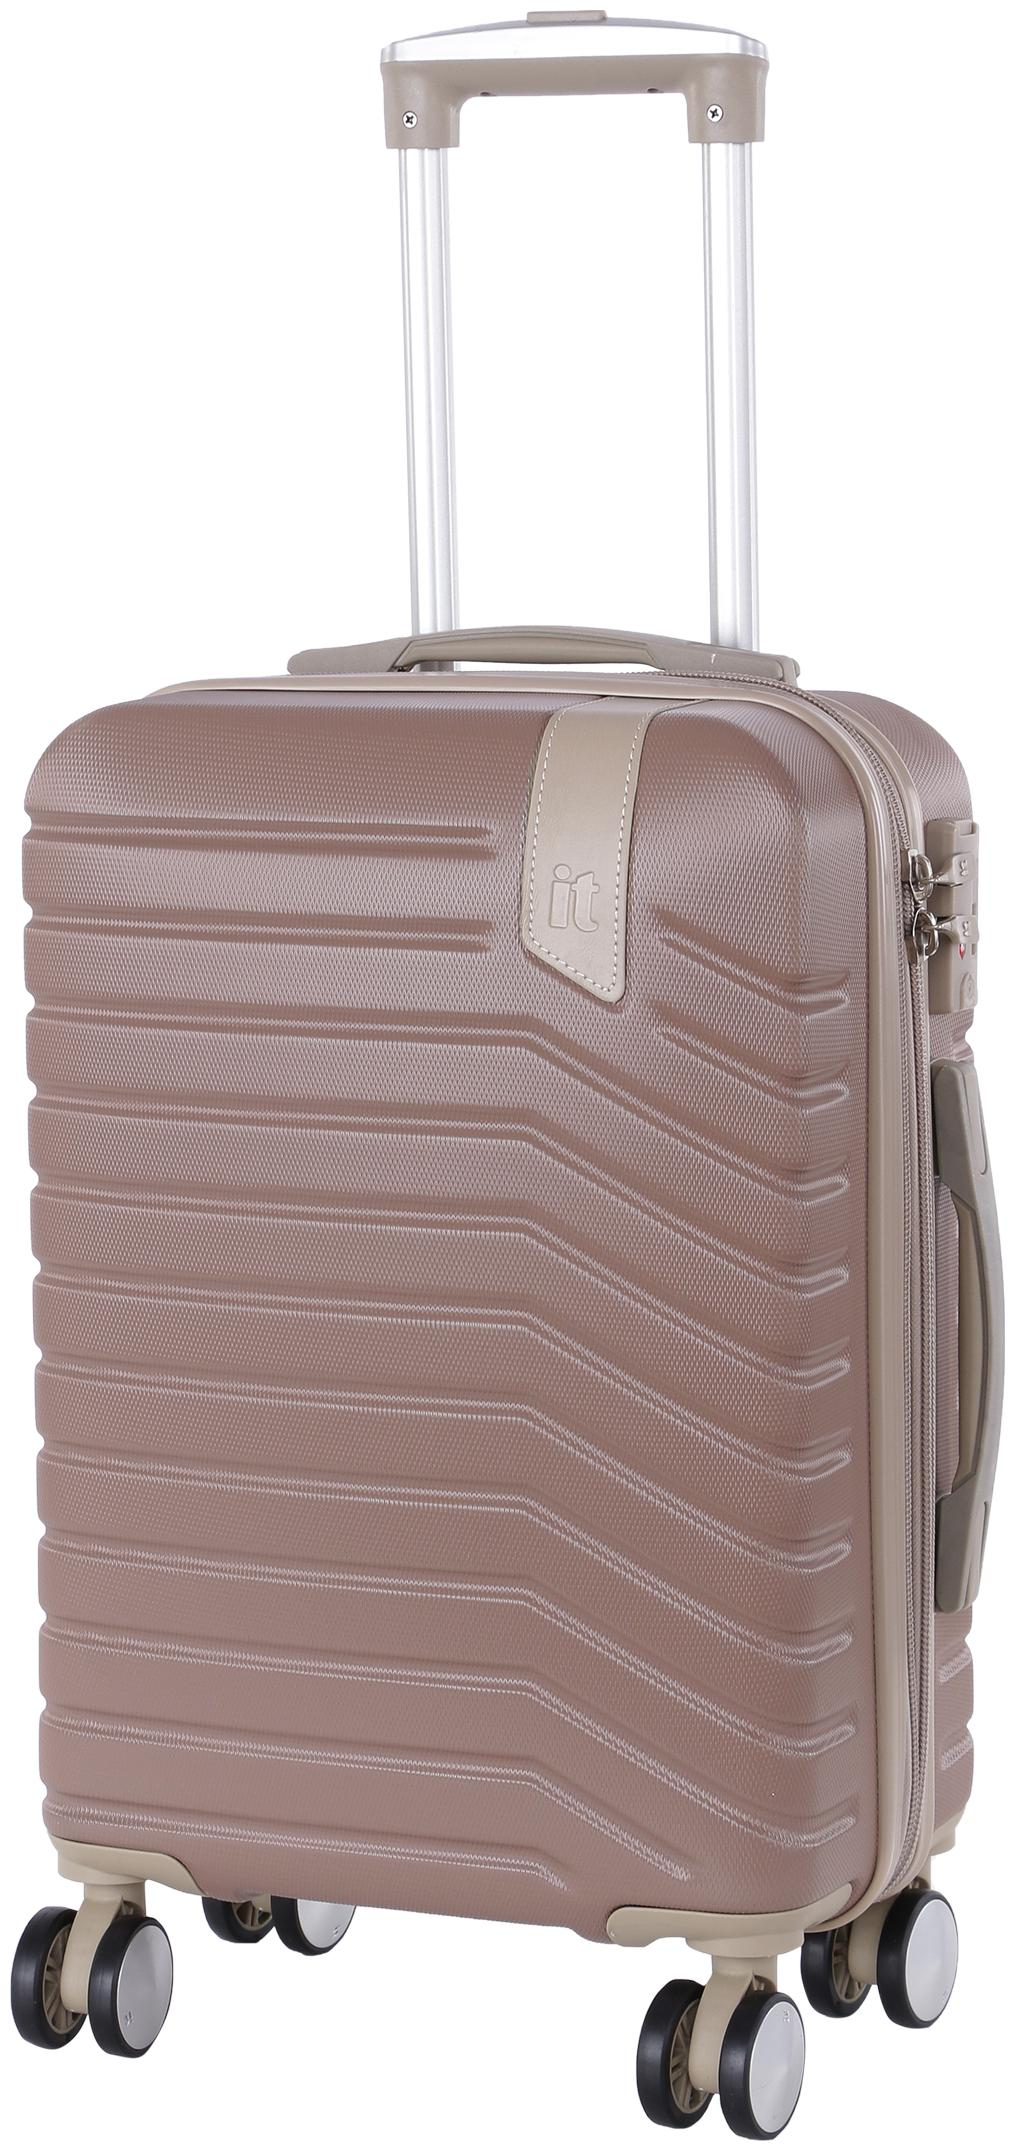 https://assetscdn1.paytm.com/images/catalog/product/B/BA/BAGIT-LUGGAGE-PPL-T1082484AB452ADA/1563364067942_0..jpg